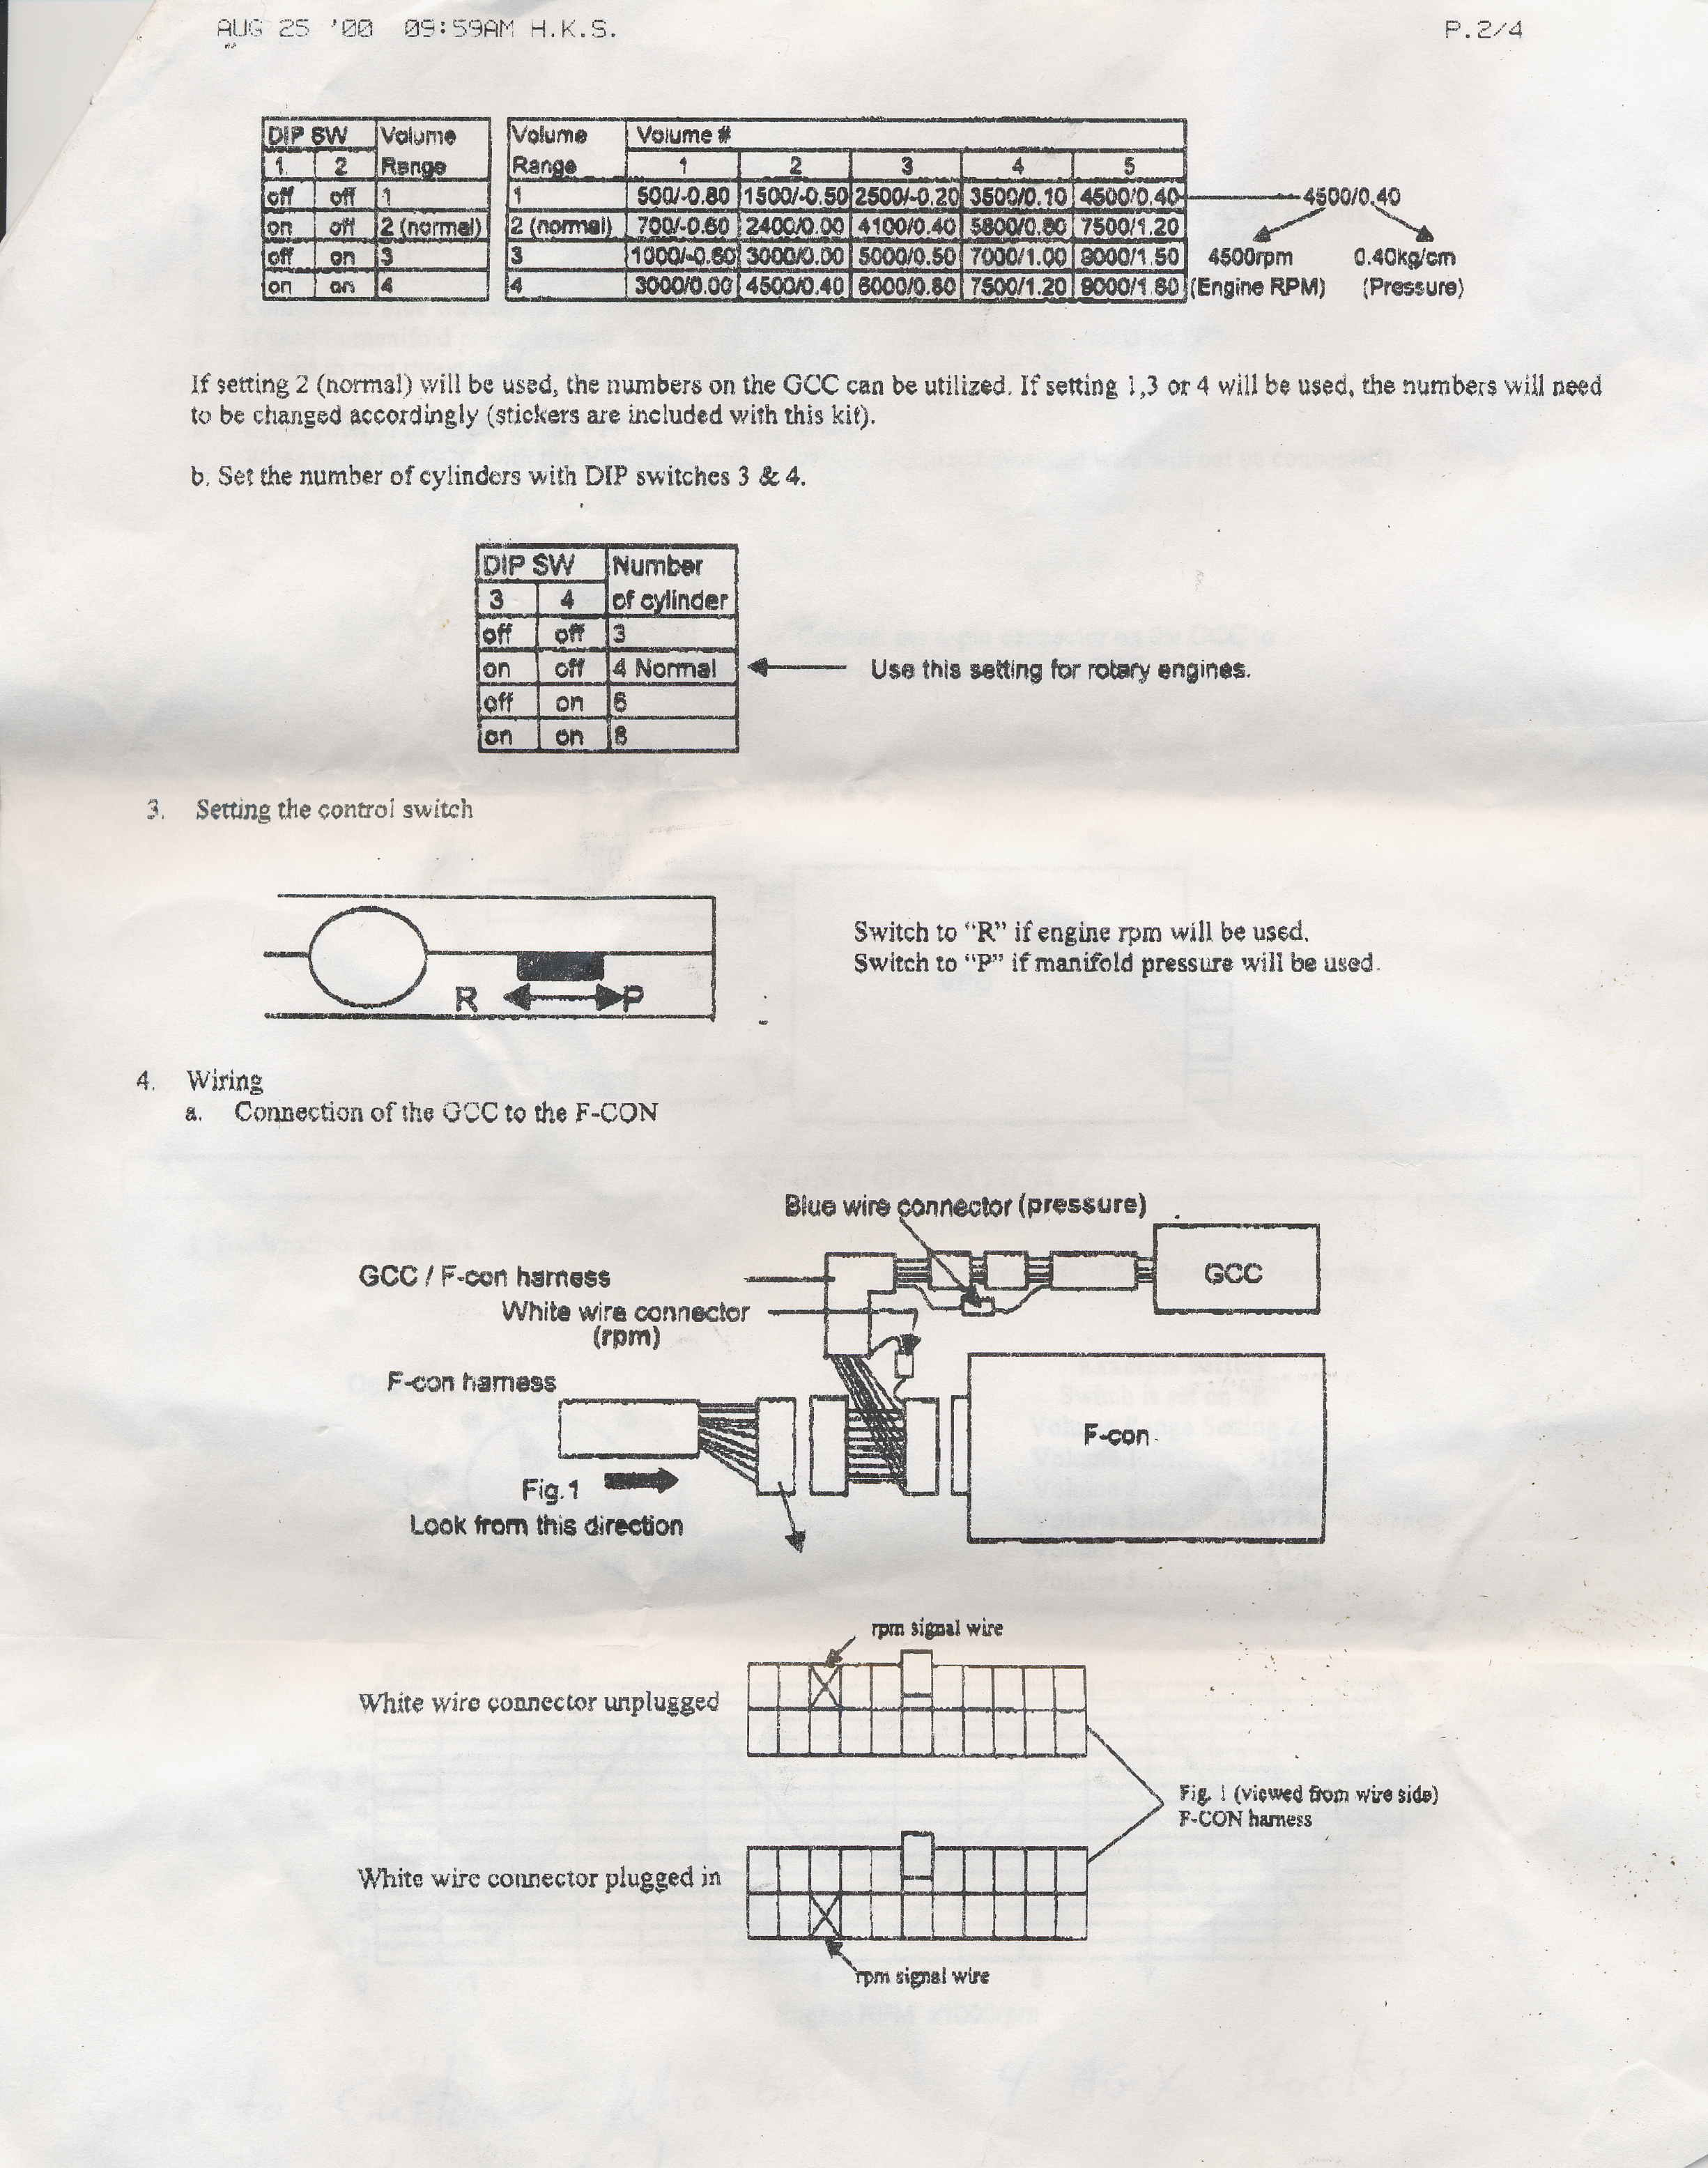 hks gcc manual 02 hks gcc graphical control computer hks fcd wiring diagram at soozxer.org